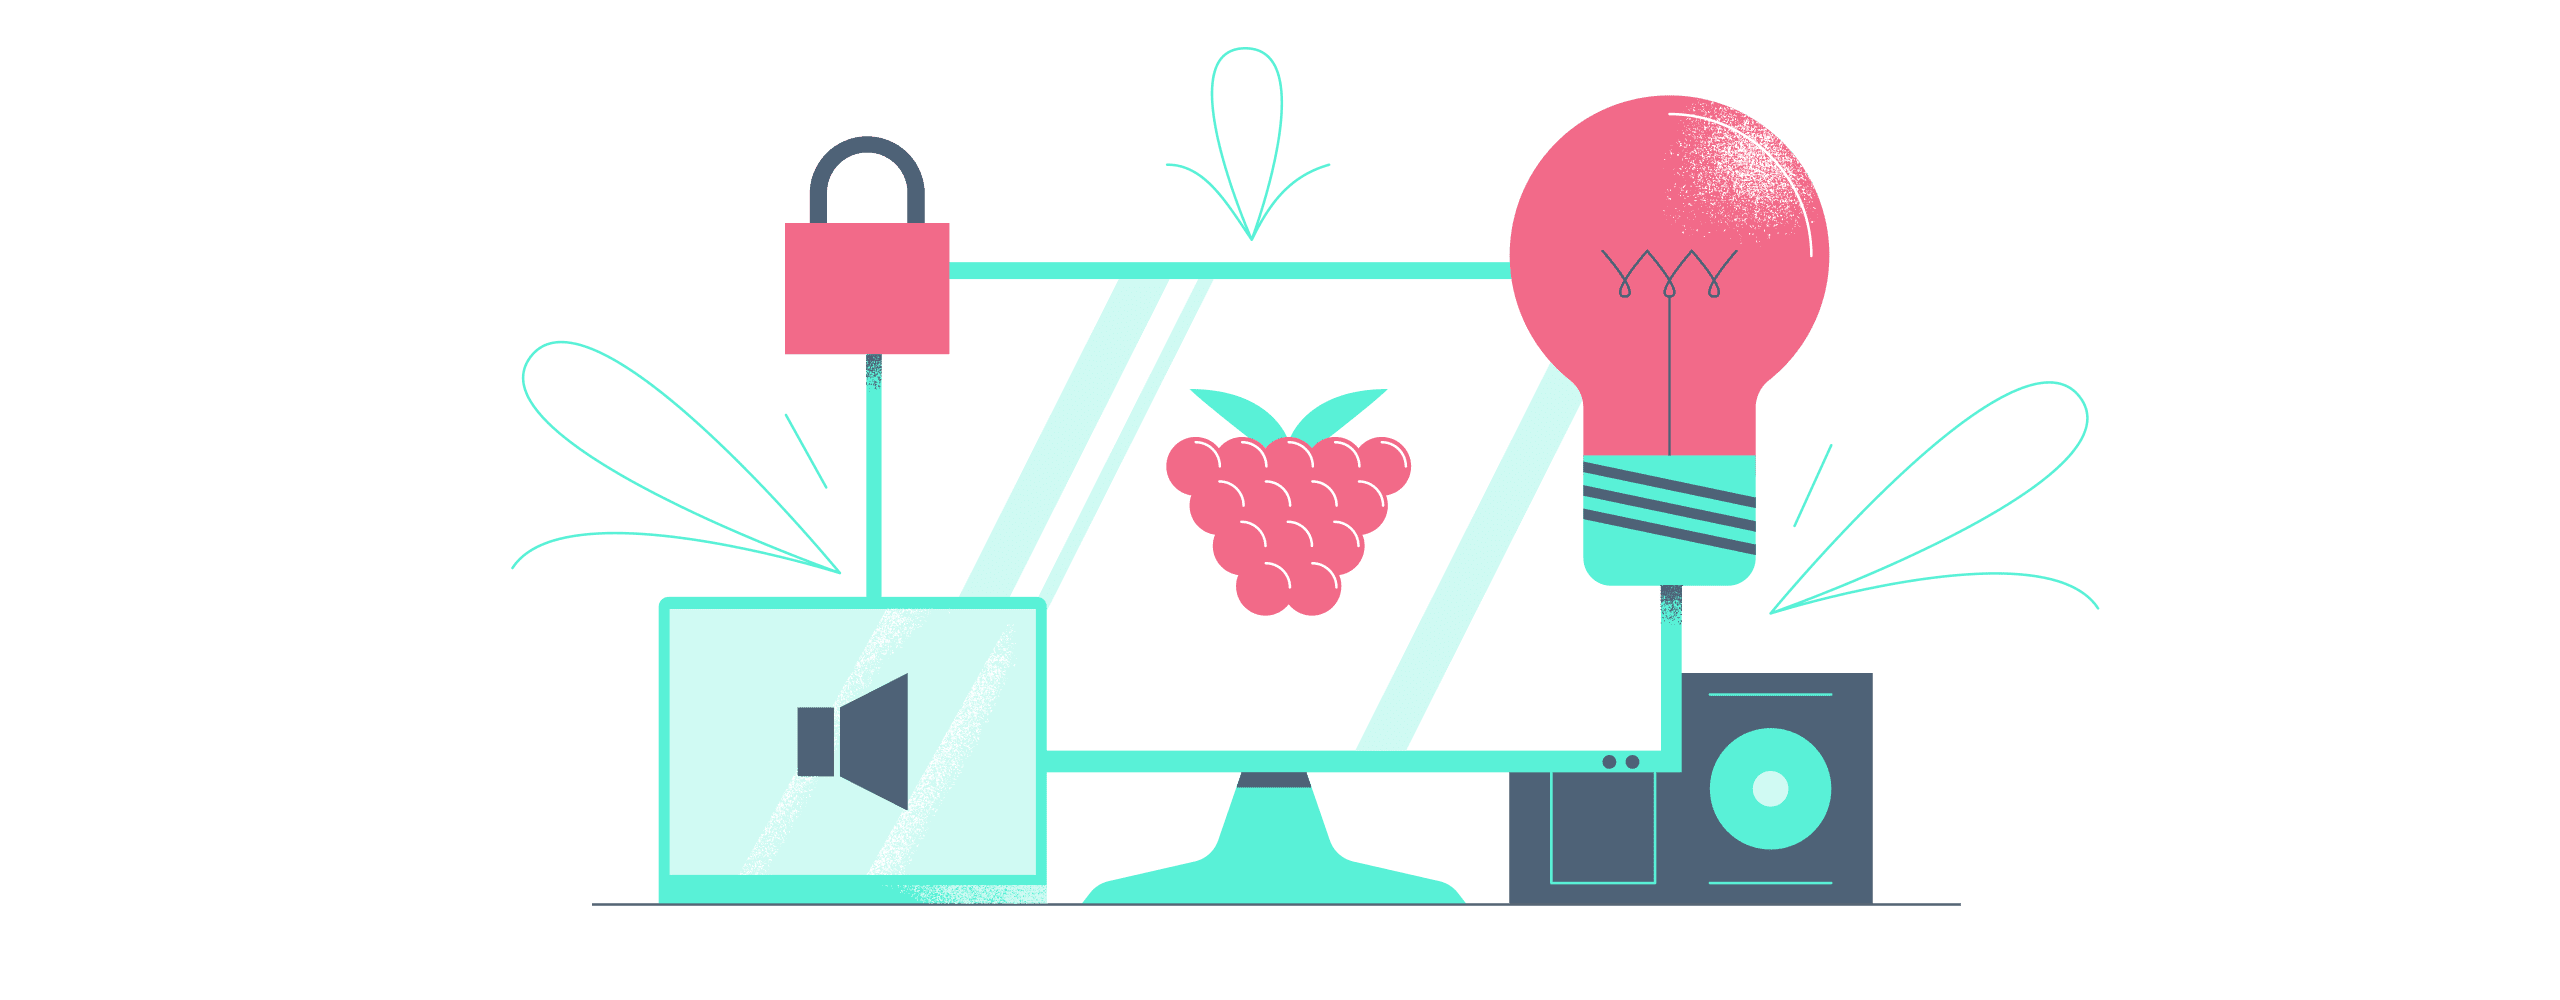 How We Improved Our Raspberry Pi-based Smart Office with Node js